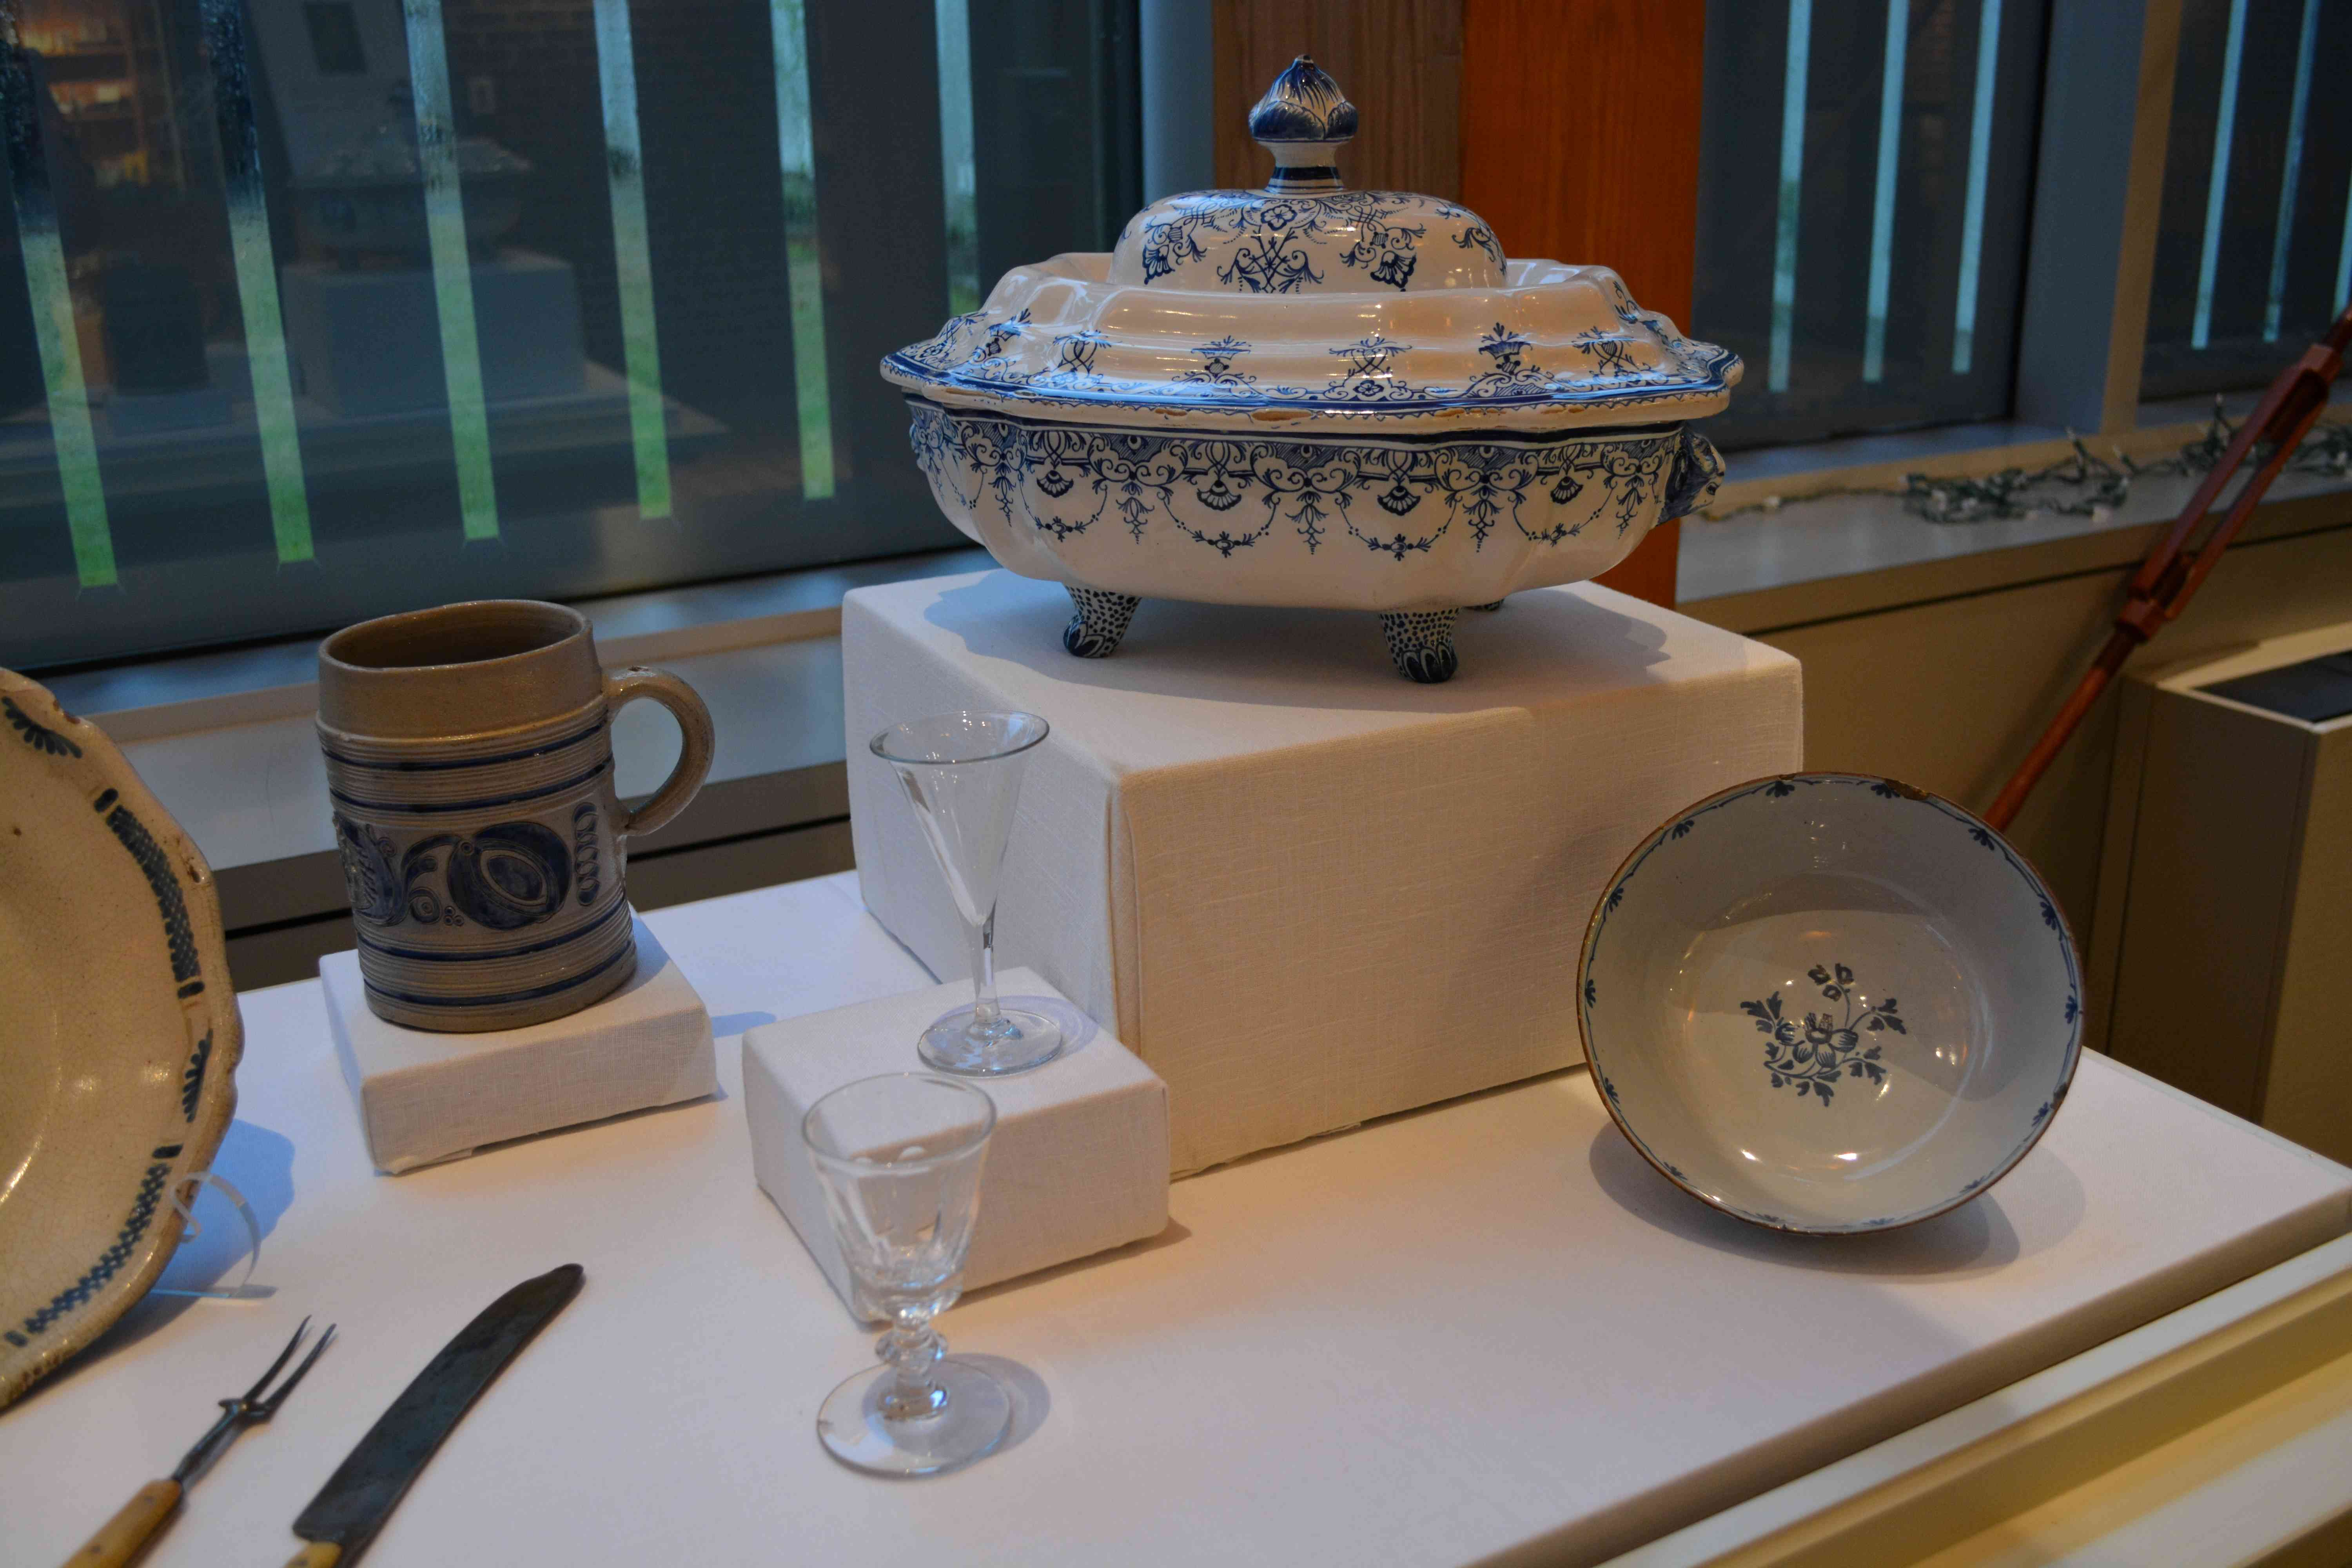 white bowl and serving dish, glass drinking glasses, beer stein